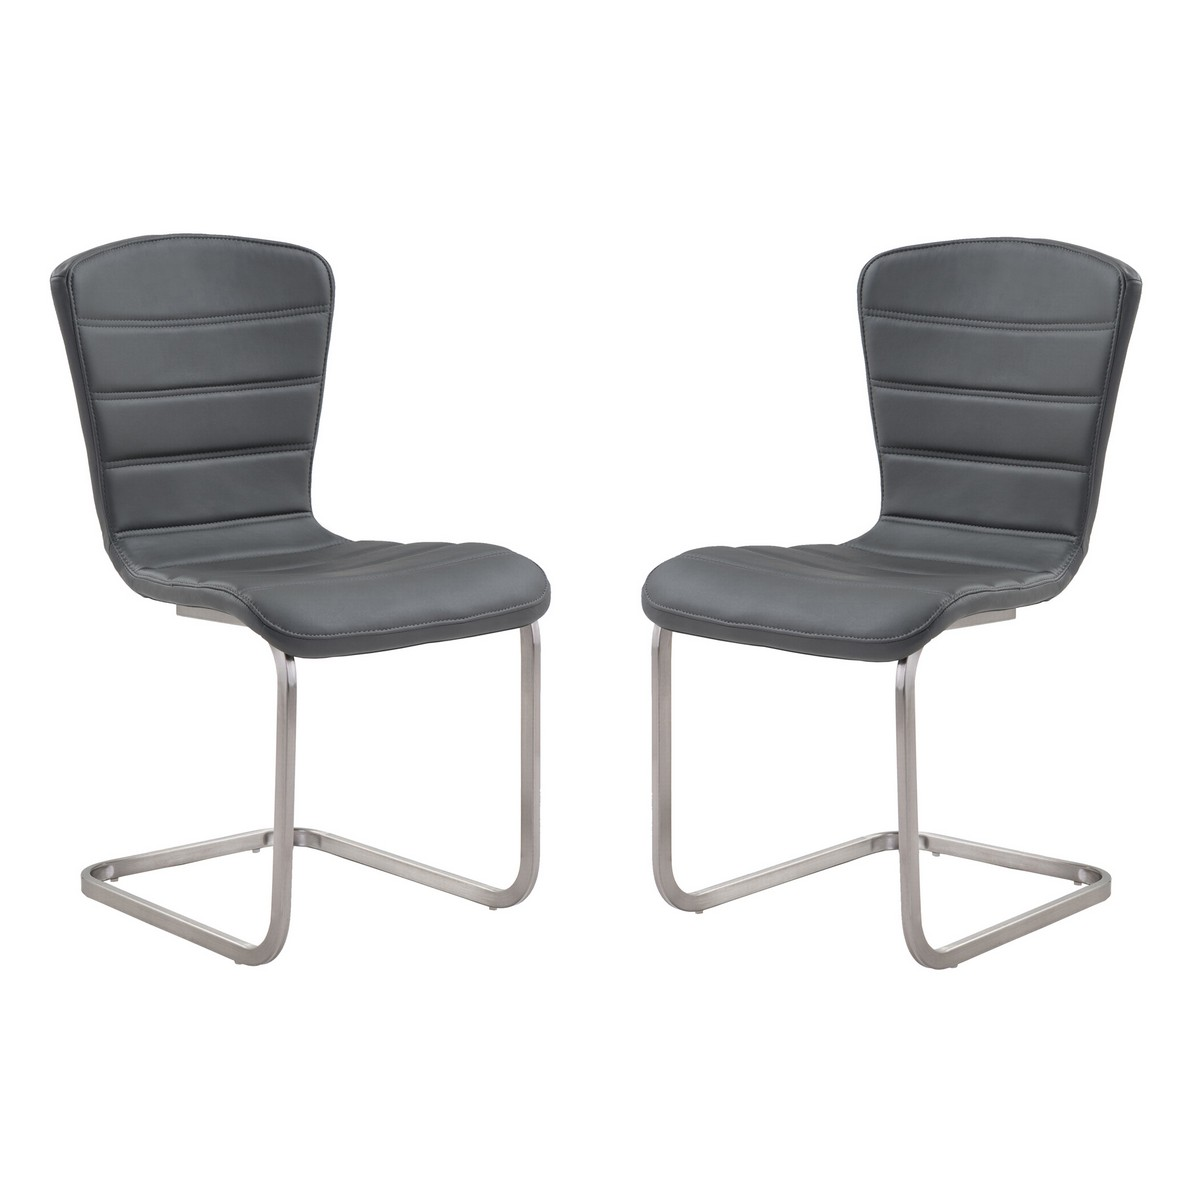 Armen Living Cameo Modern Side Chair In Gray and Stainless Steel